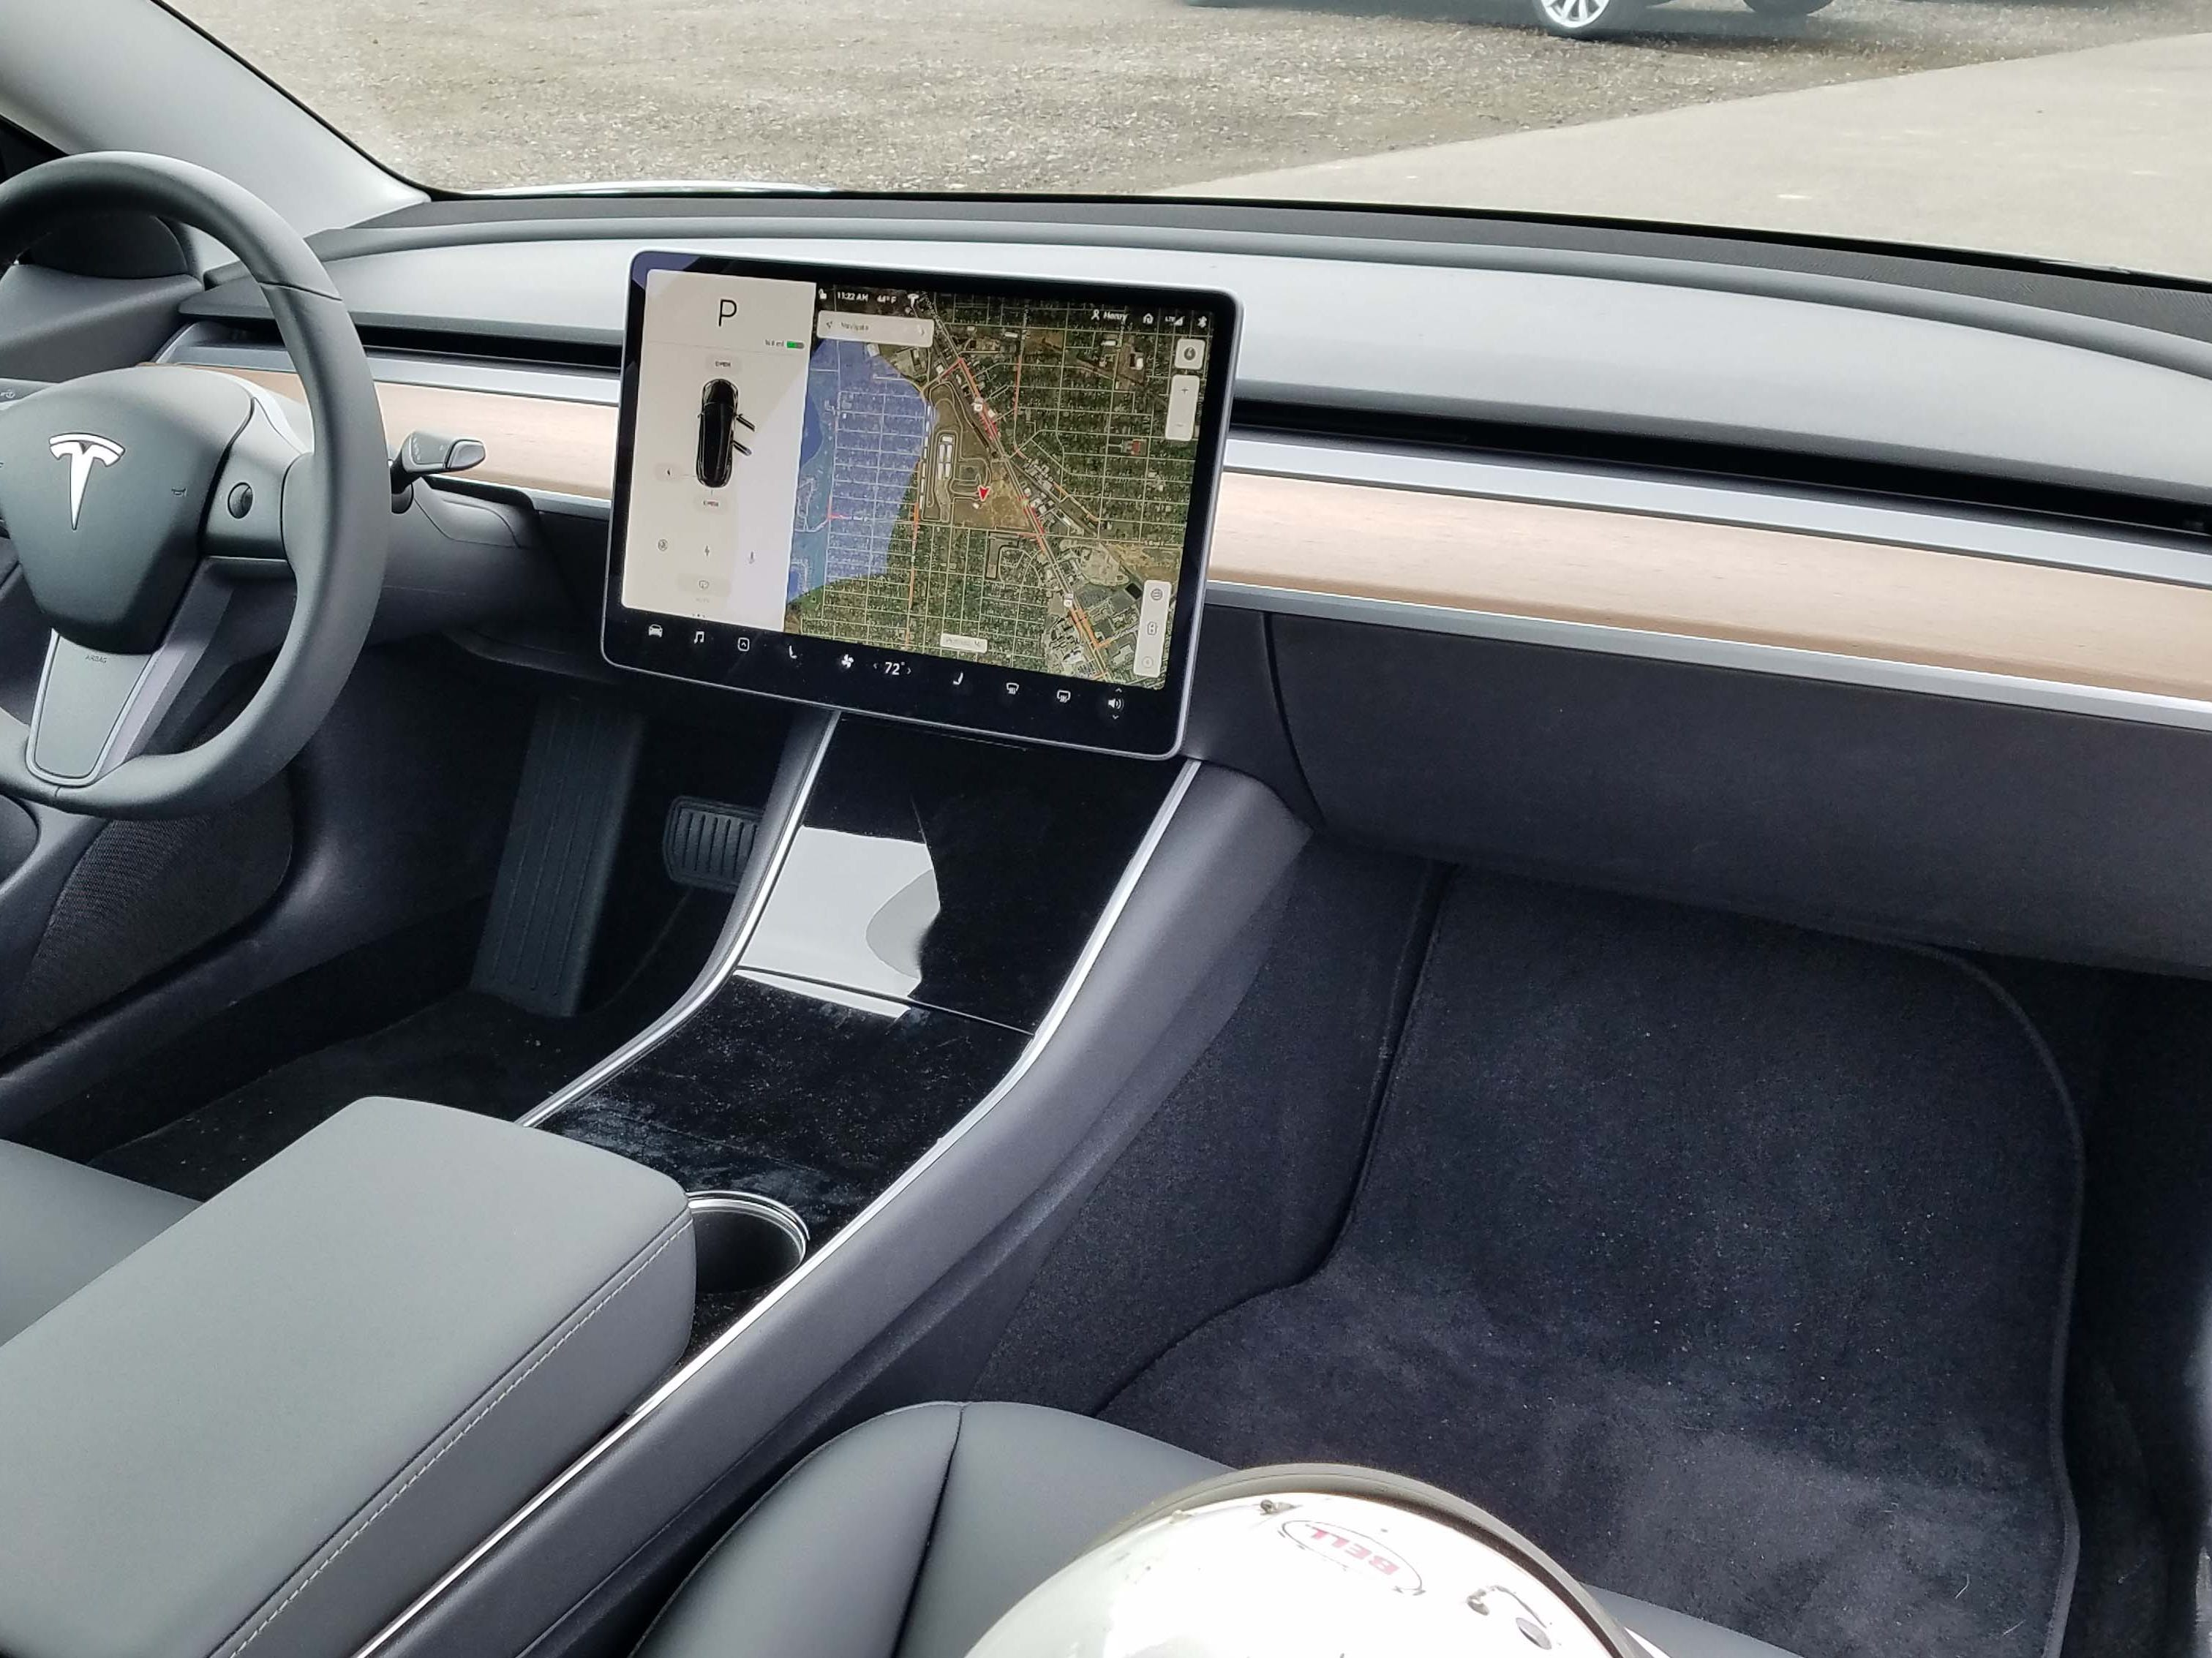 The Tesla Model 3 is almost entirely controlled via its 15-inch touchscreen — making it an iPhone on wheels with a unique automotive operating system.